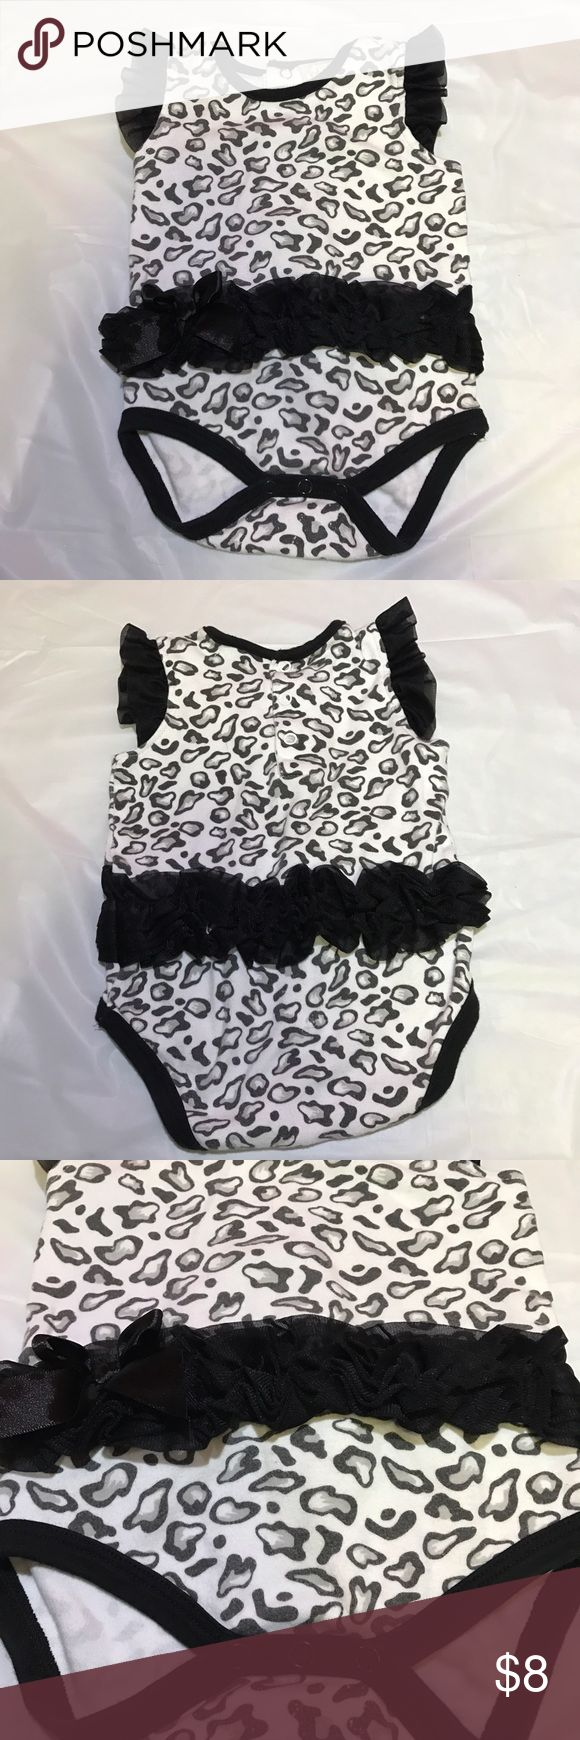 🎀Black and white cheetah outfit Brand new, only worn once for pictures. One Pieces